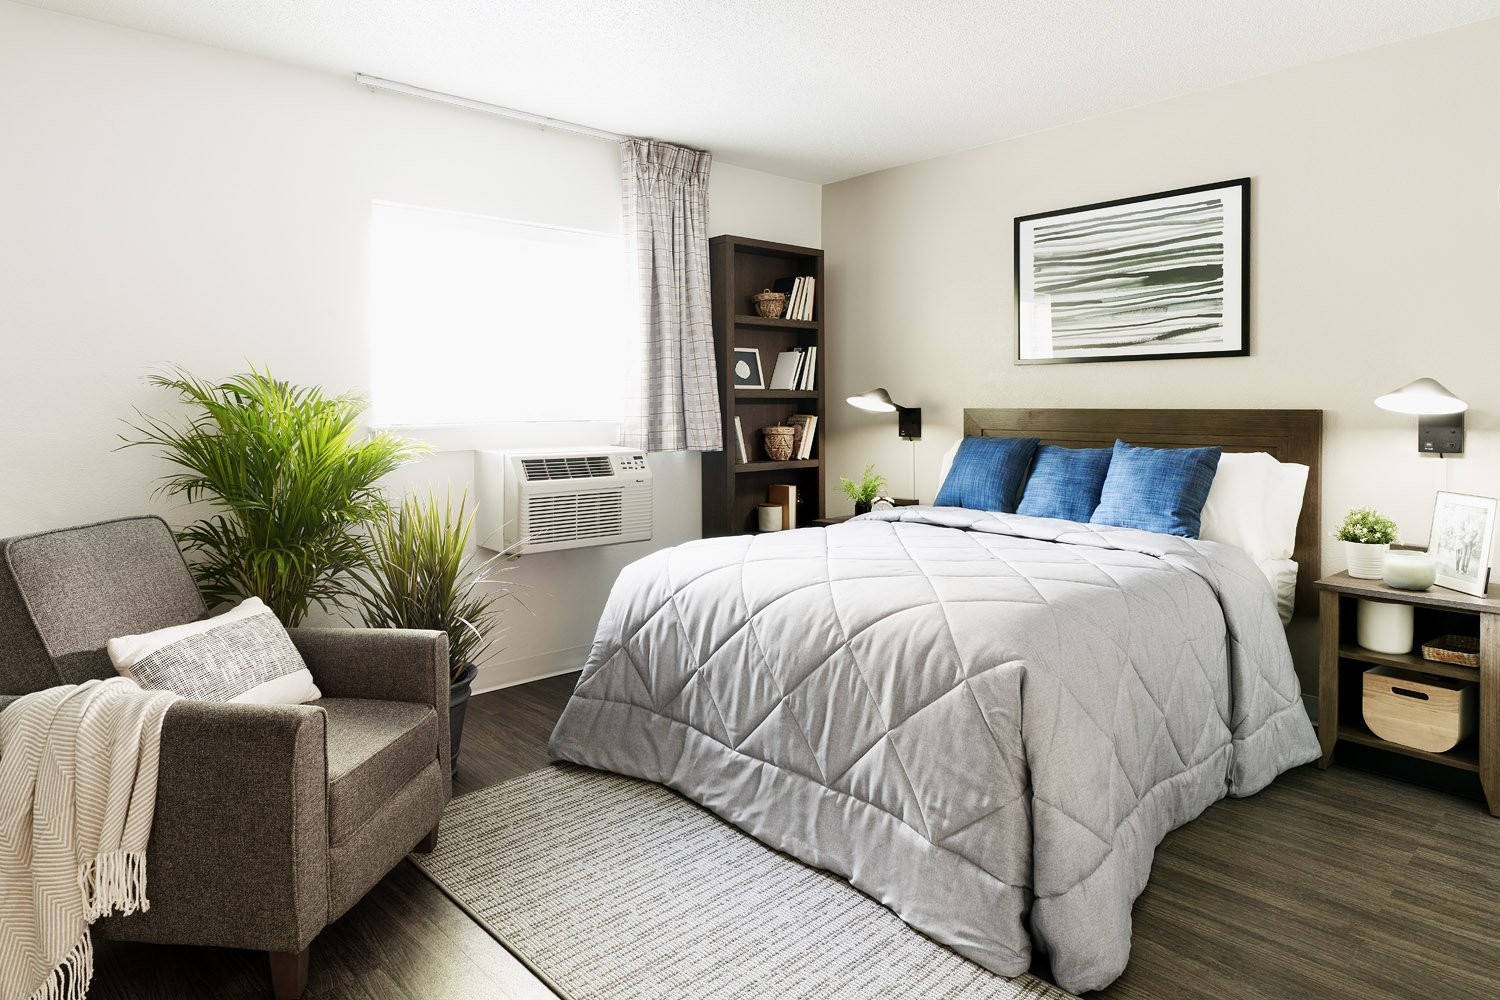 InTown Suites Extended Stay New Orleans - Harvey